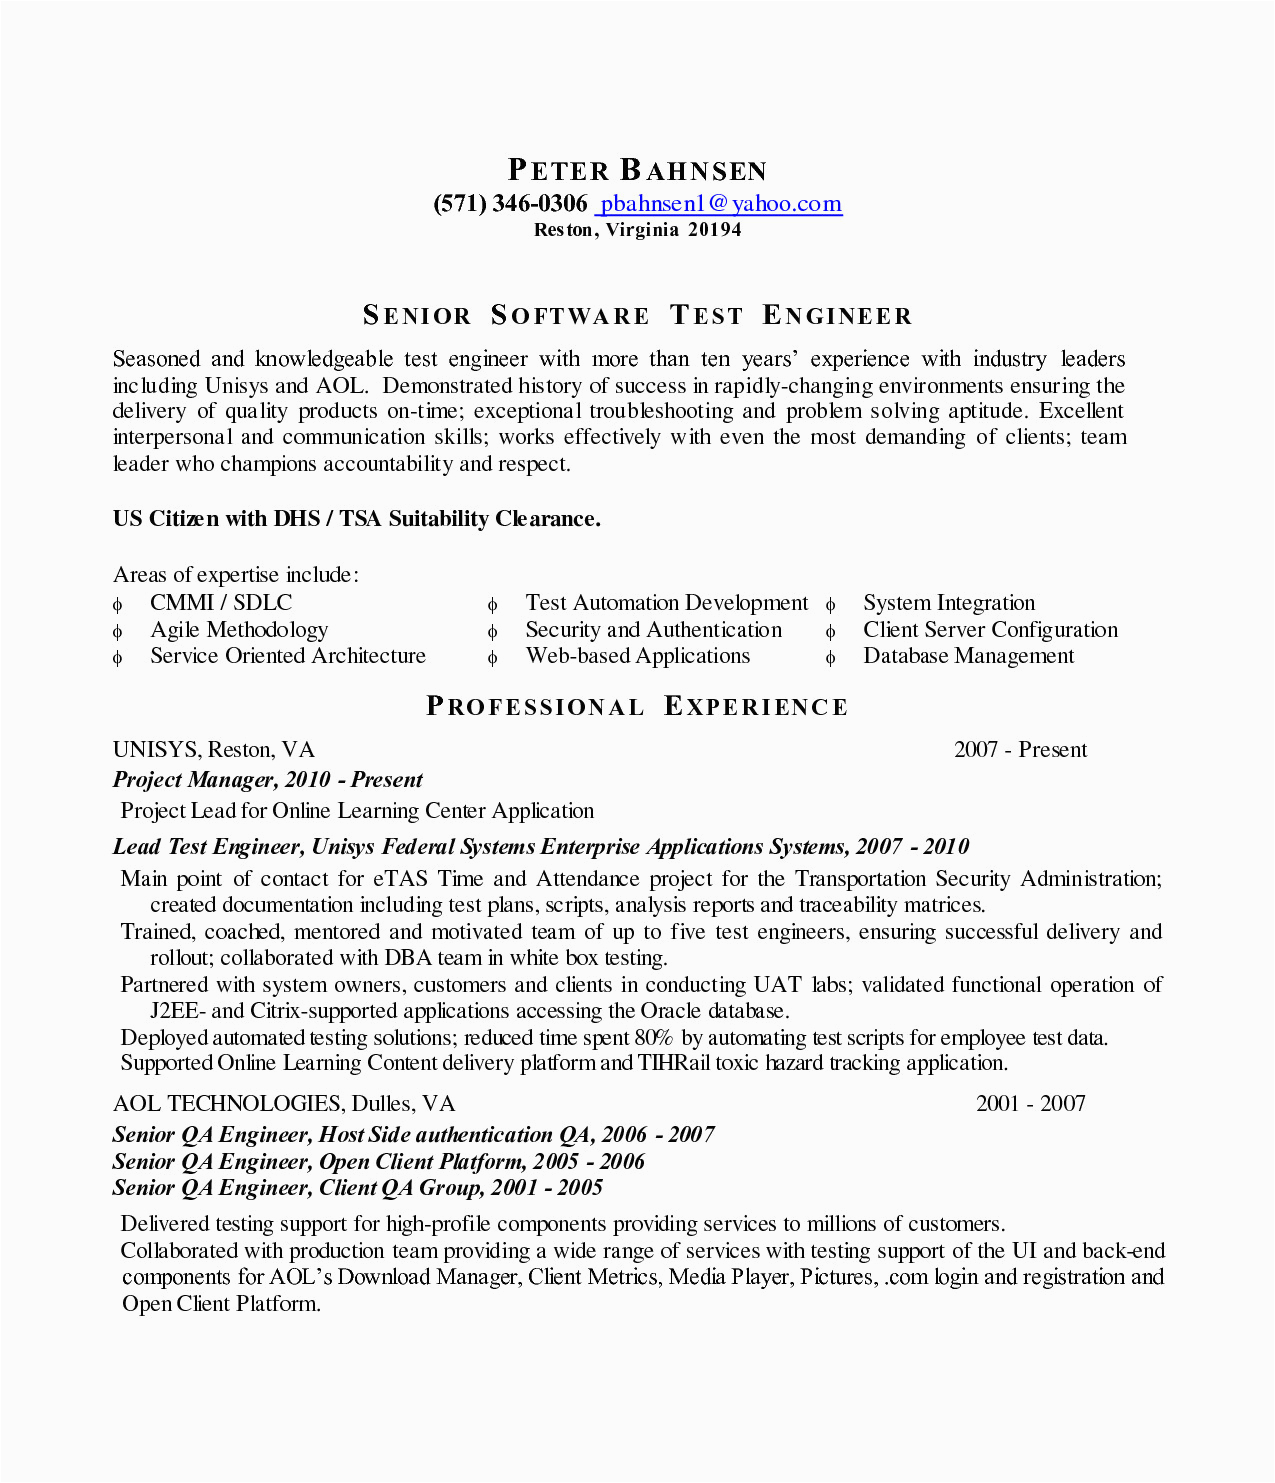 sample resume for software test engineer with experience